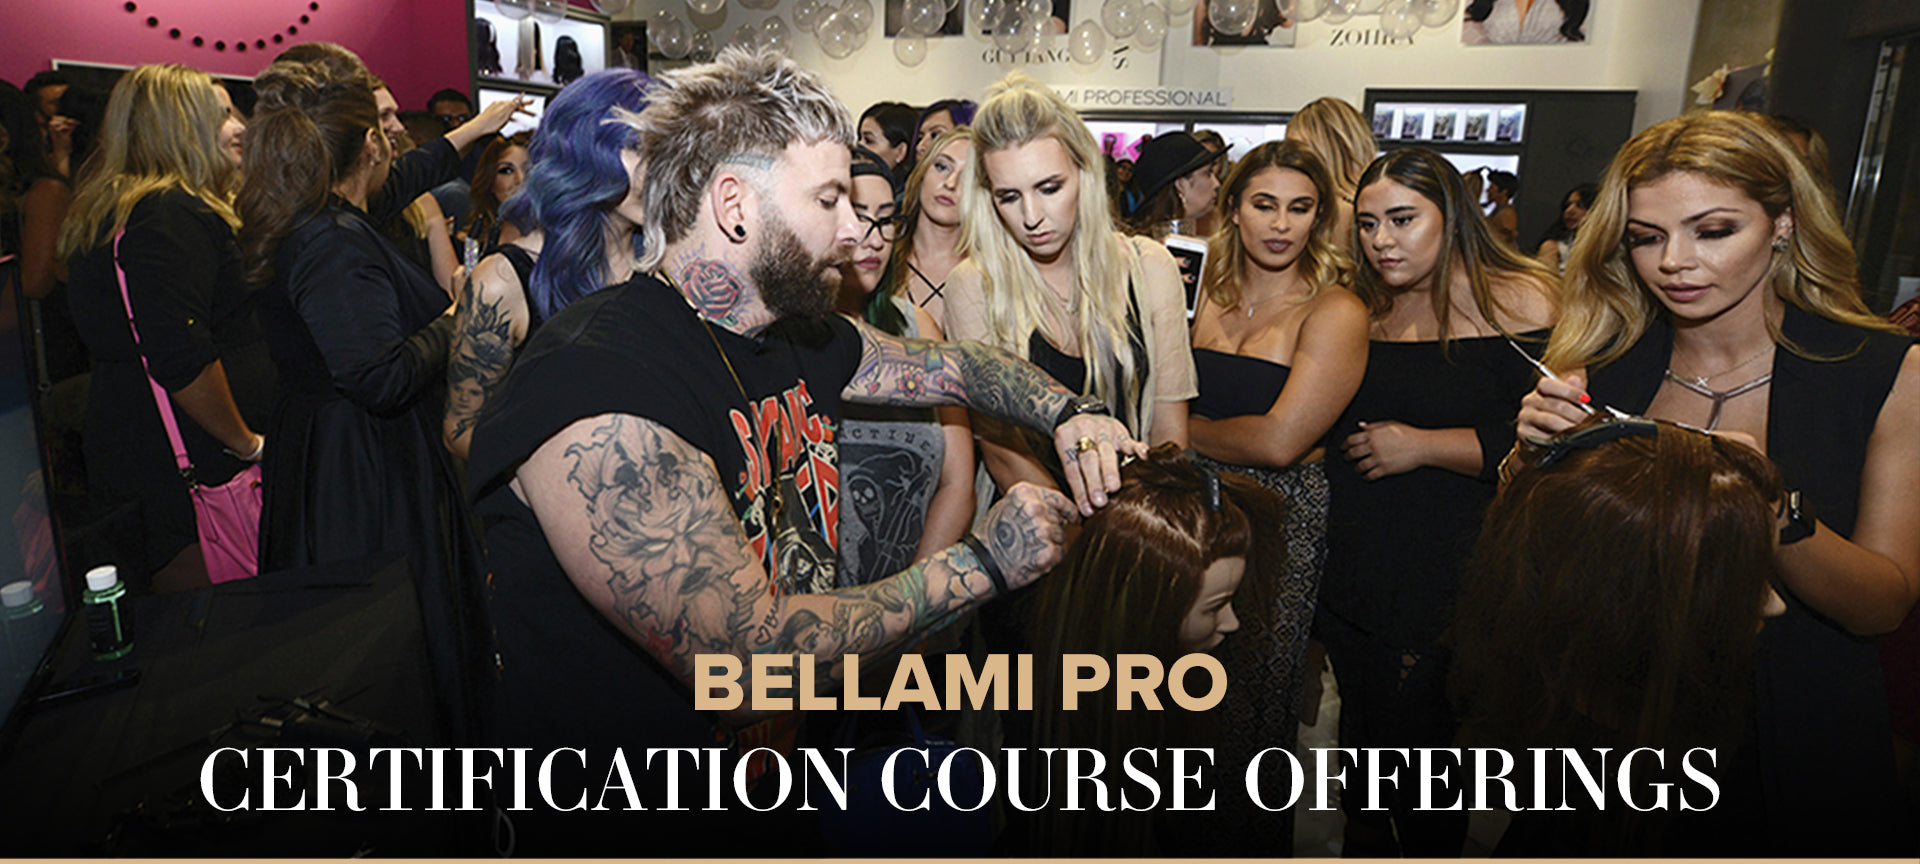 BELLAMI PRO CERTIFICATION COURSE OFFERINGS